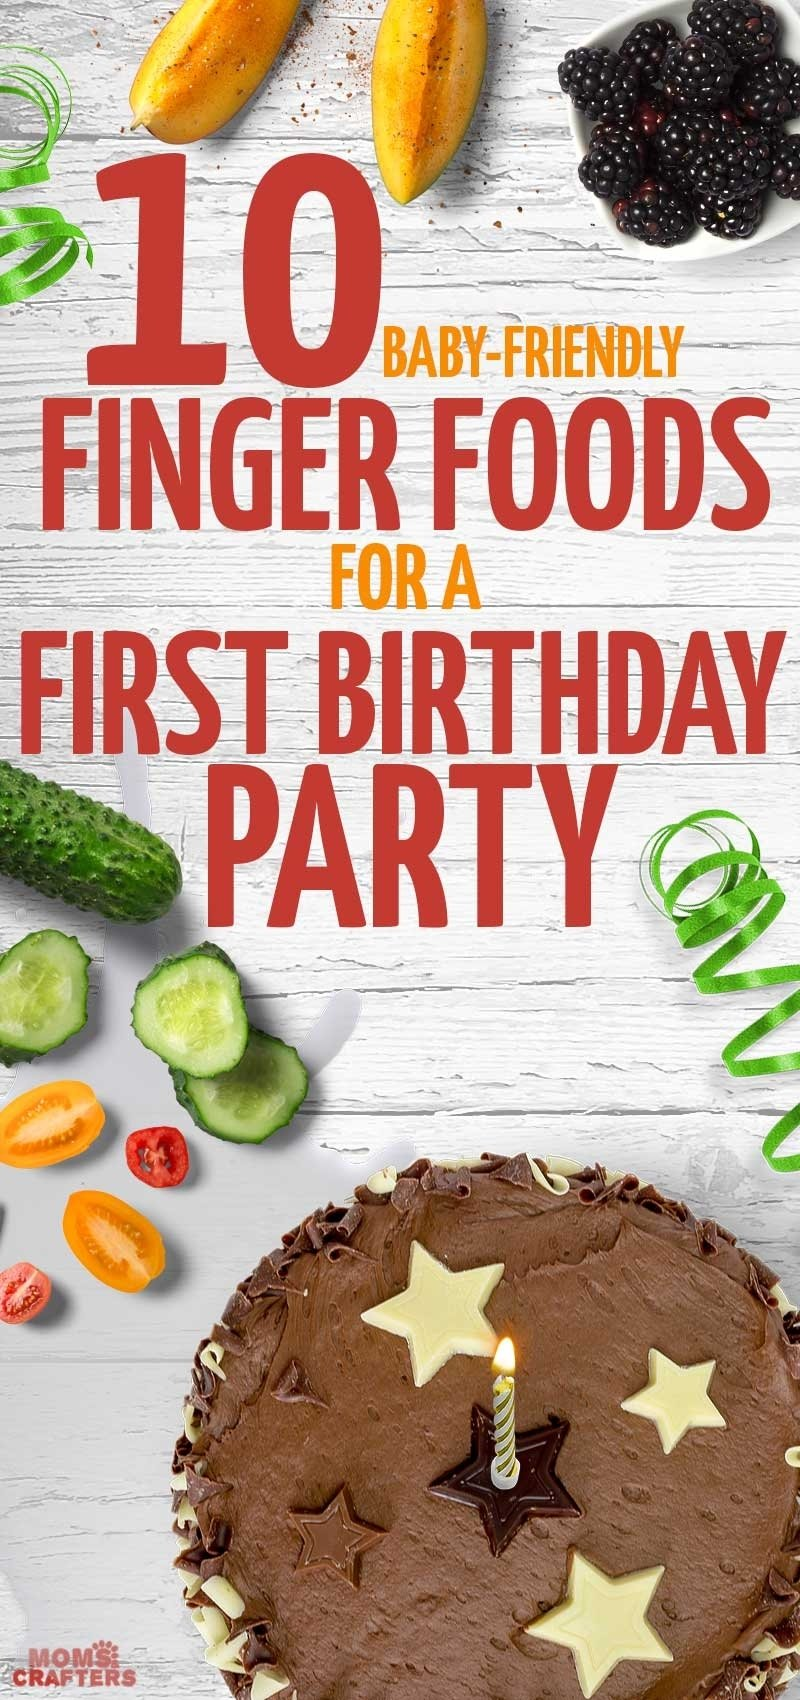 10 Elegant Birthday Party Finger Food Ideas 10 great finger foods for a first birthday party moms and crafters 2 2020